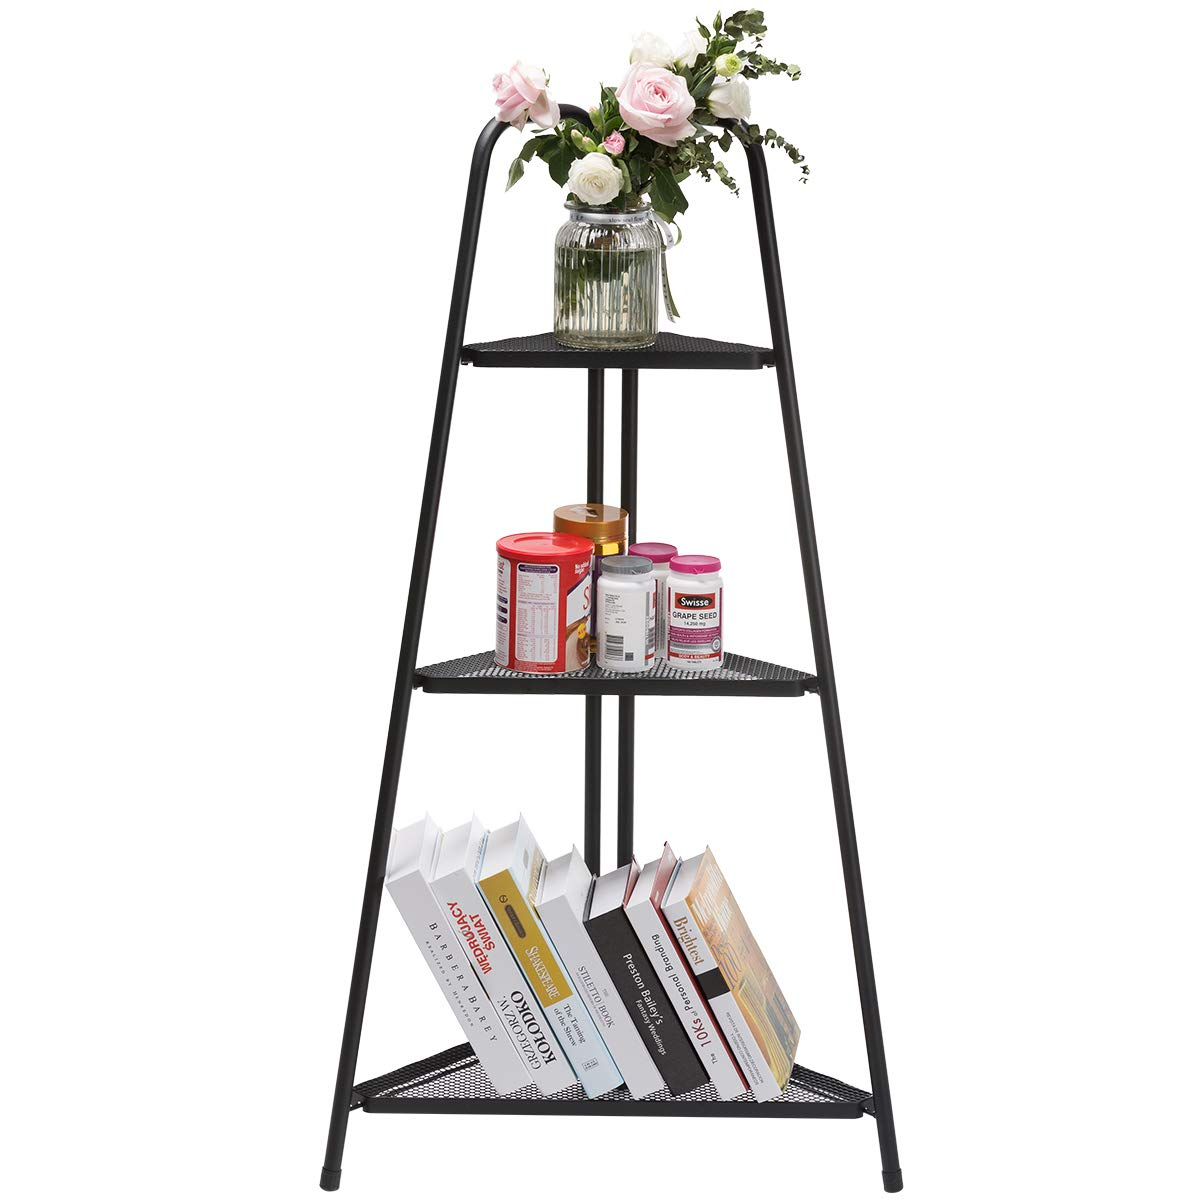 DOEWORKS Corner Shelf, 3-Tier Storage Rack, Black Organizer Unit for Home Office